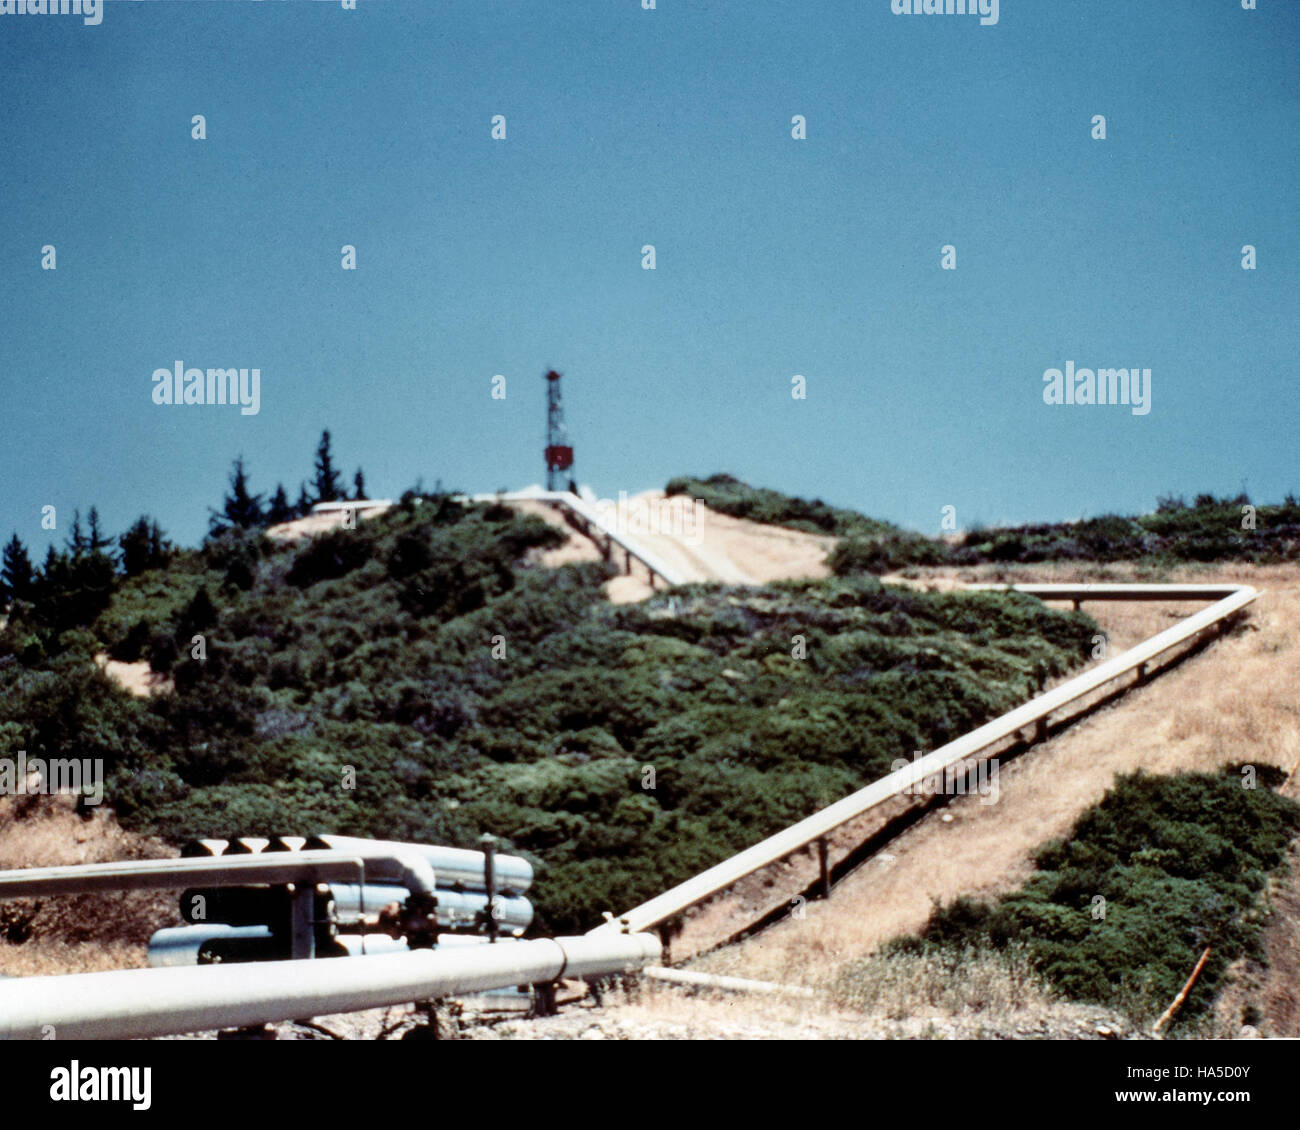 001 021 Stock Photos & 001 021 Stock Images - Page 2 - Alamy